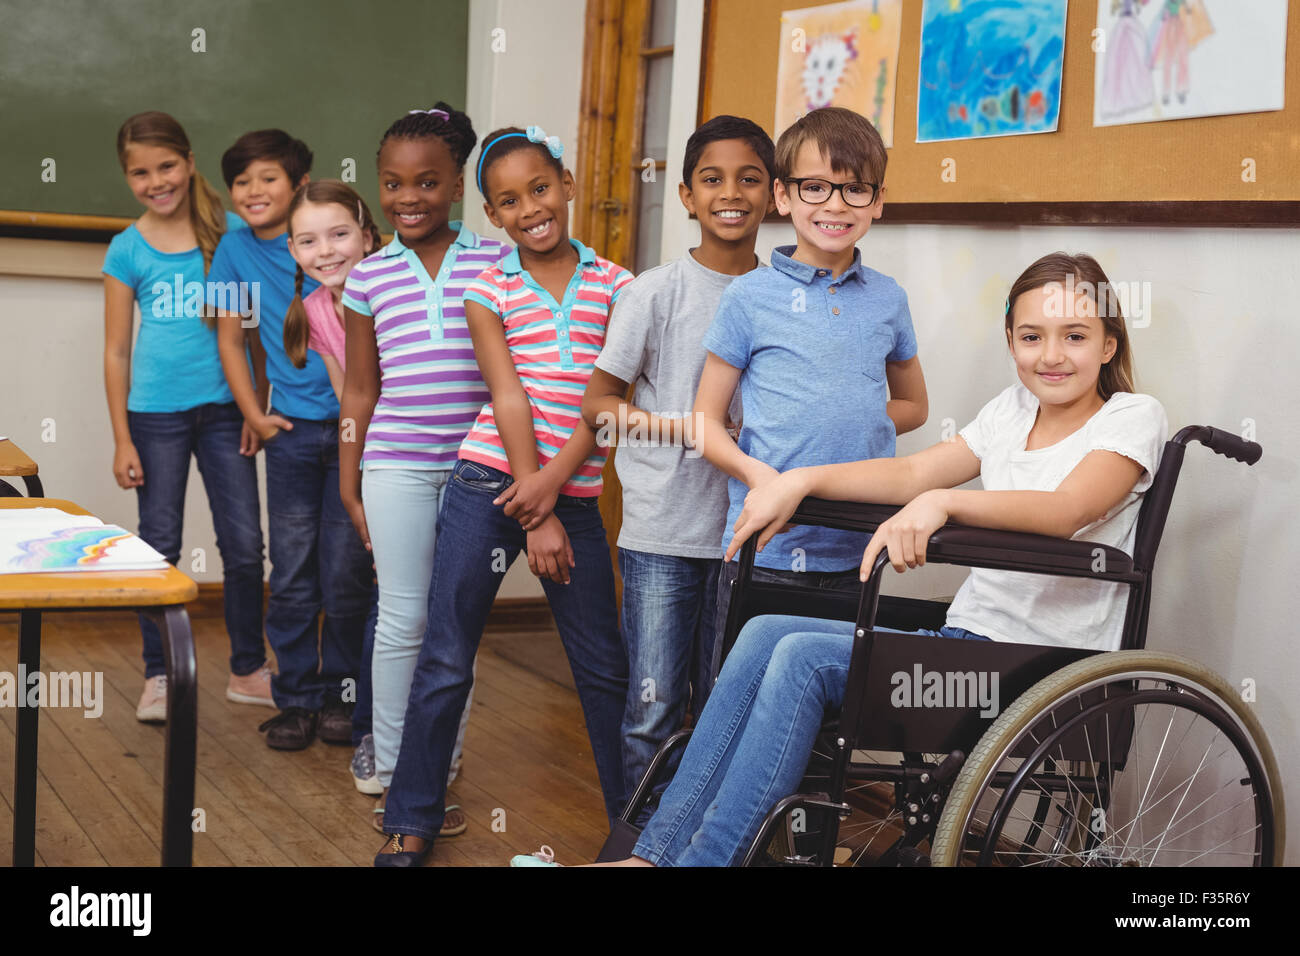 Disabled pupil smiling at camera with classmates - Stock Image